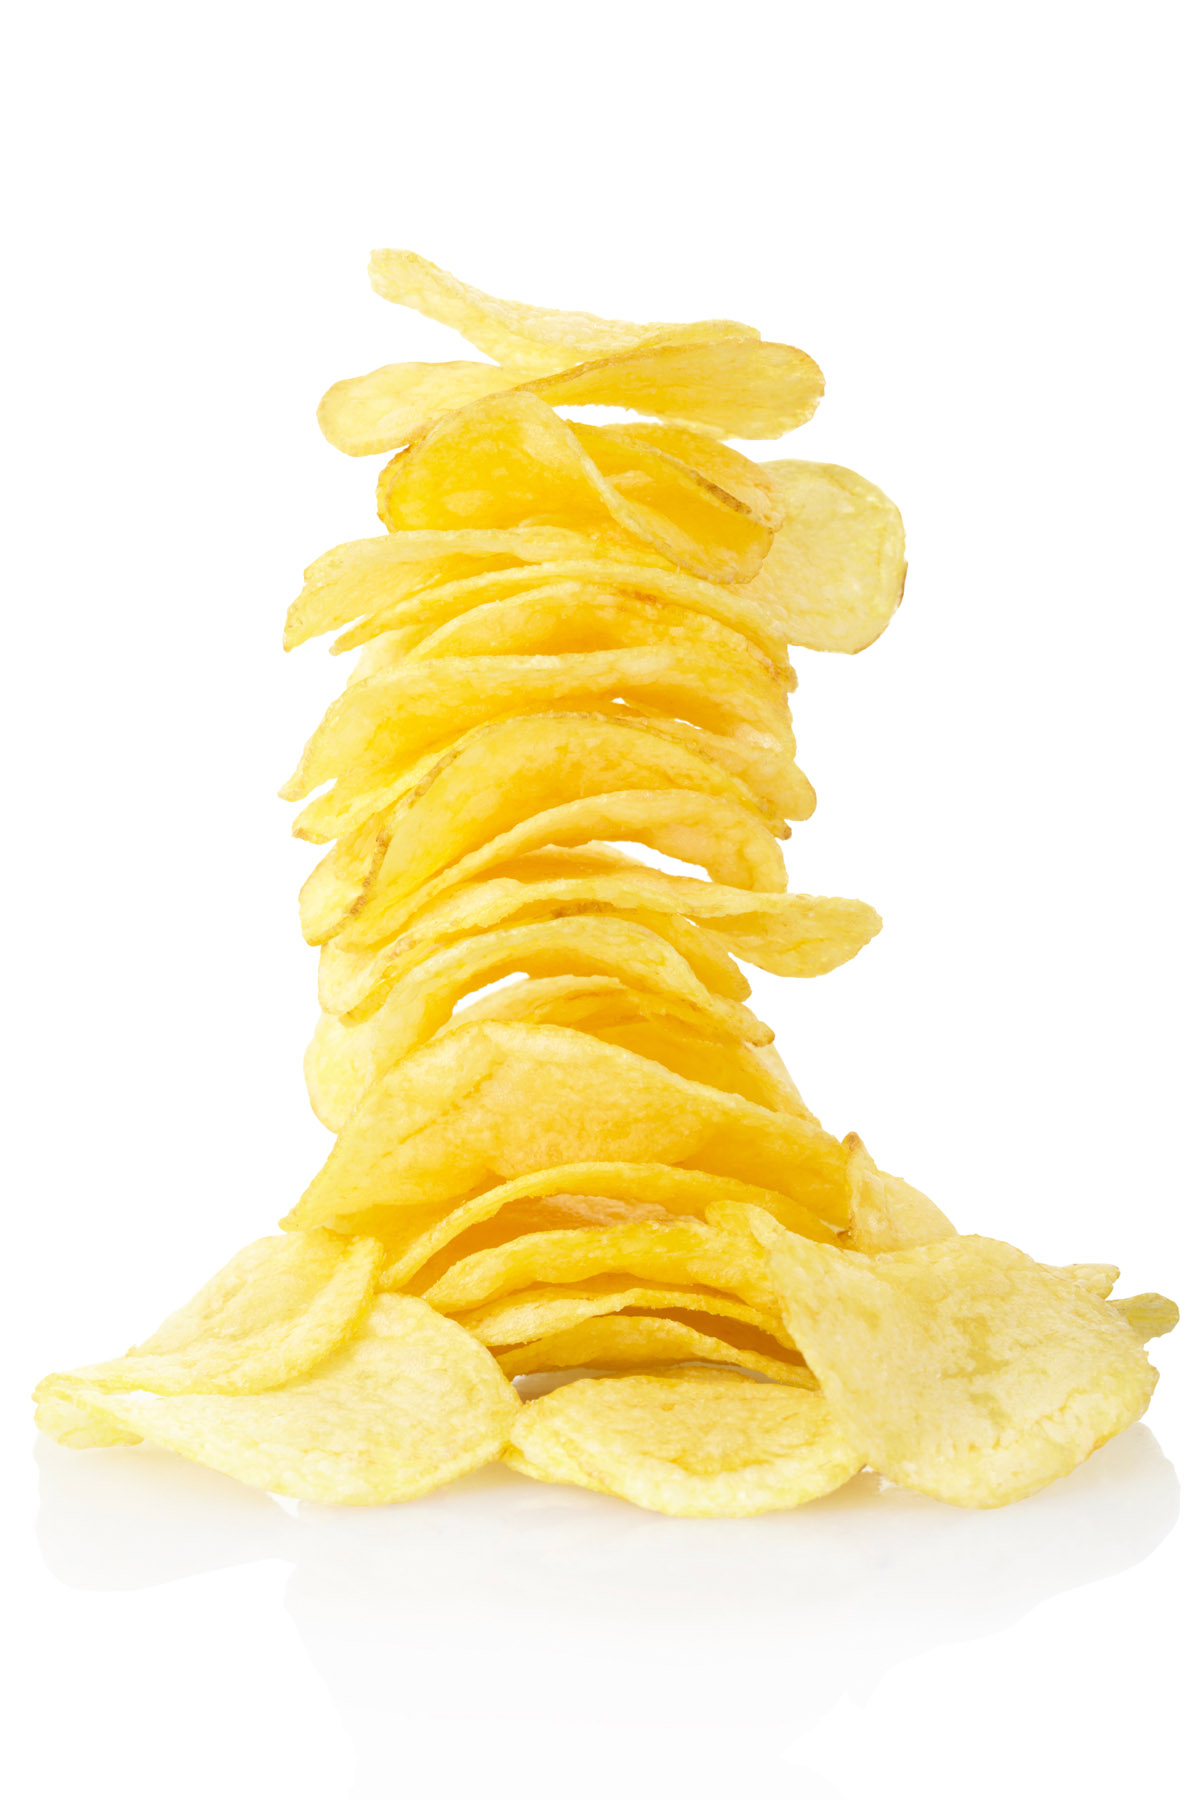 Potato chips 31260